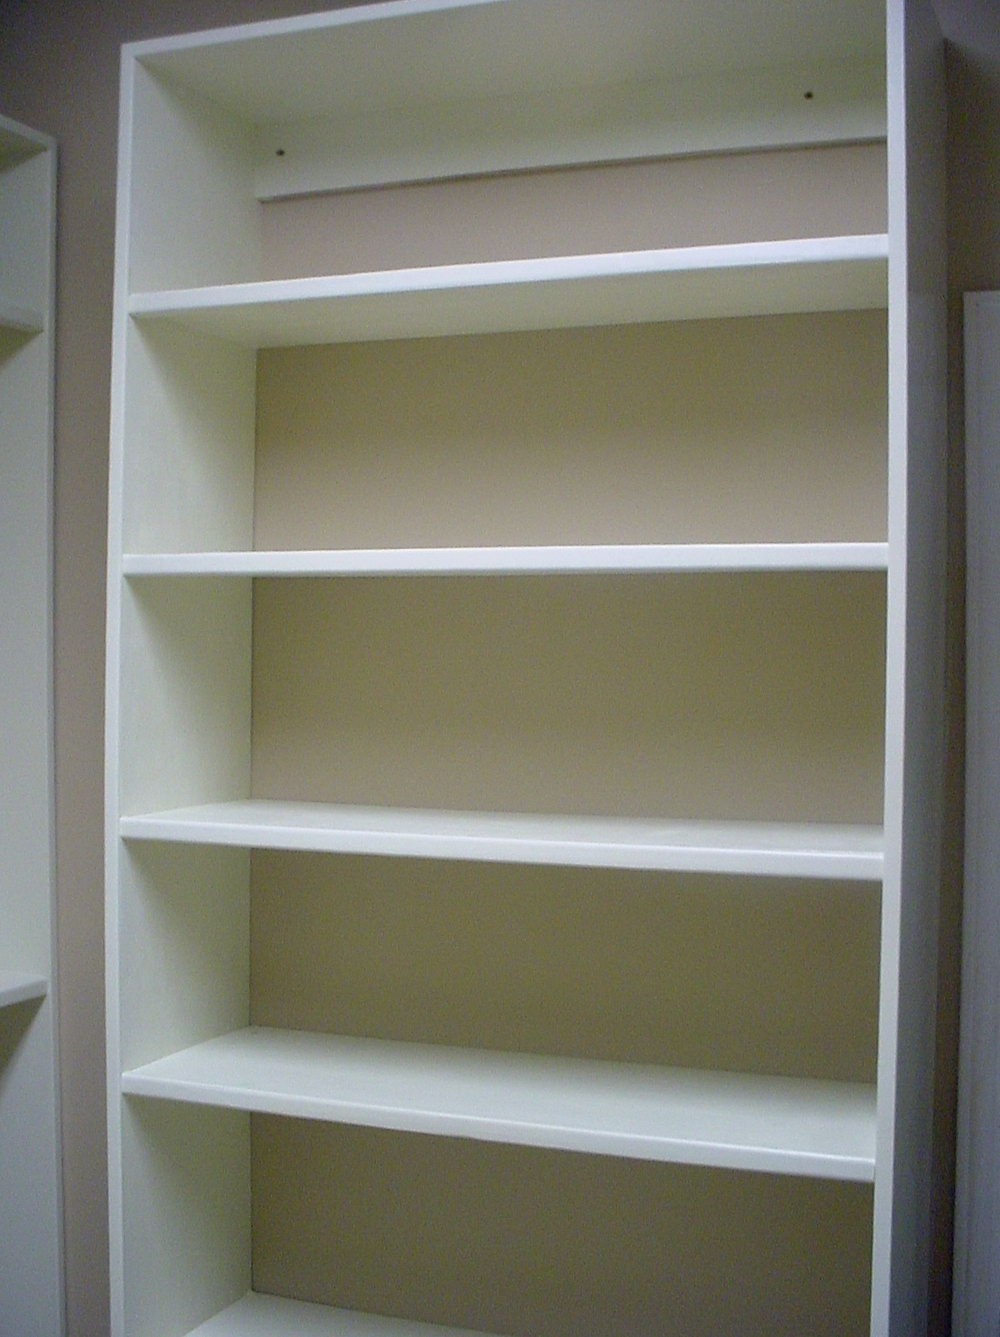 Closet Shelving Systems Home Depot Home Design Ideas Pertaining To Home Shelving Systems (#7 of 15)